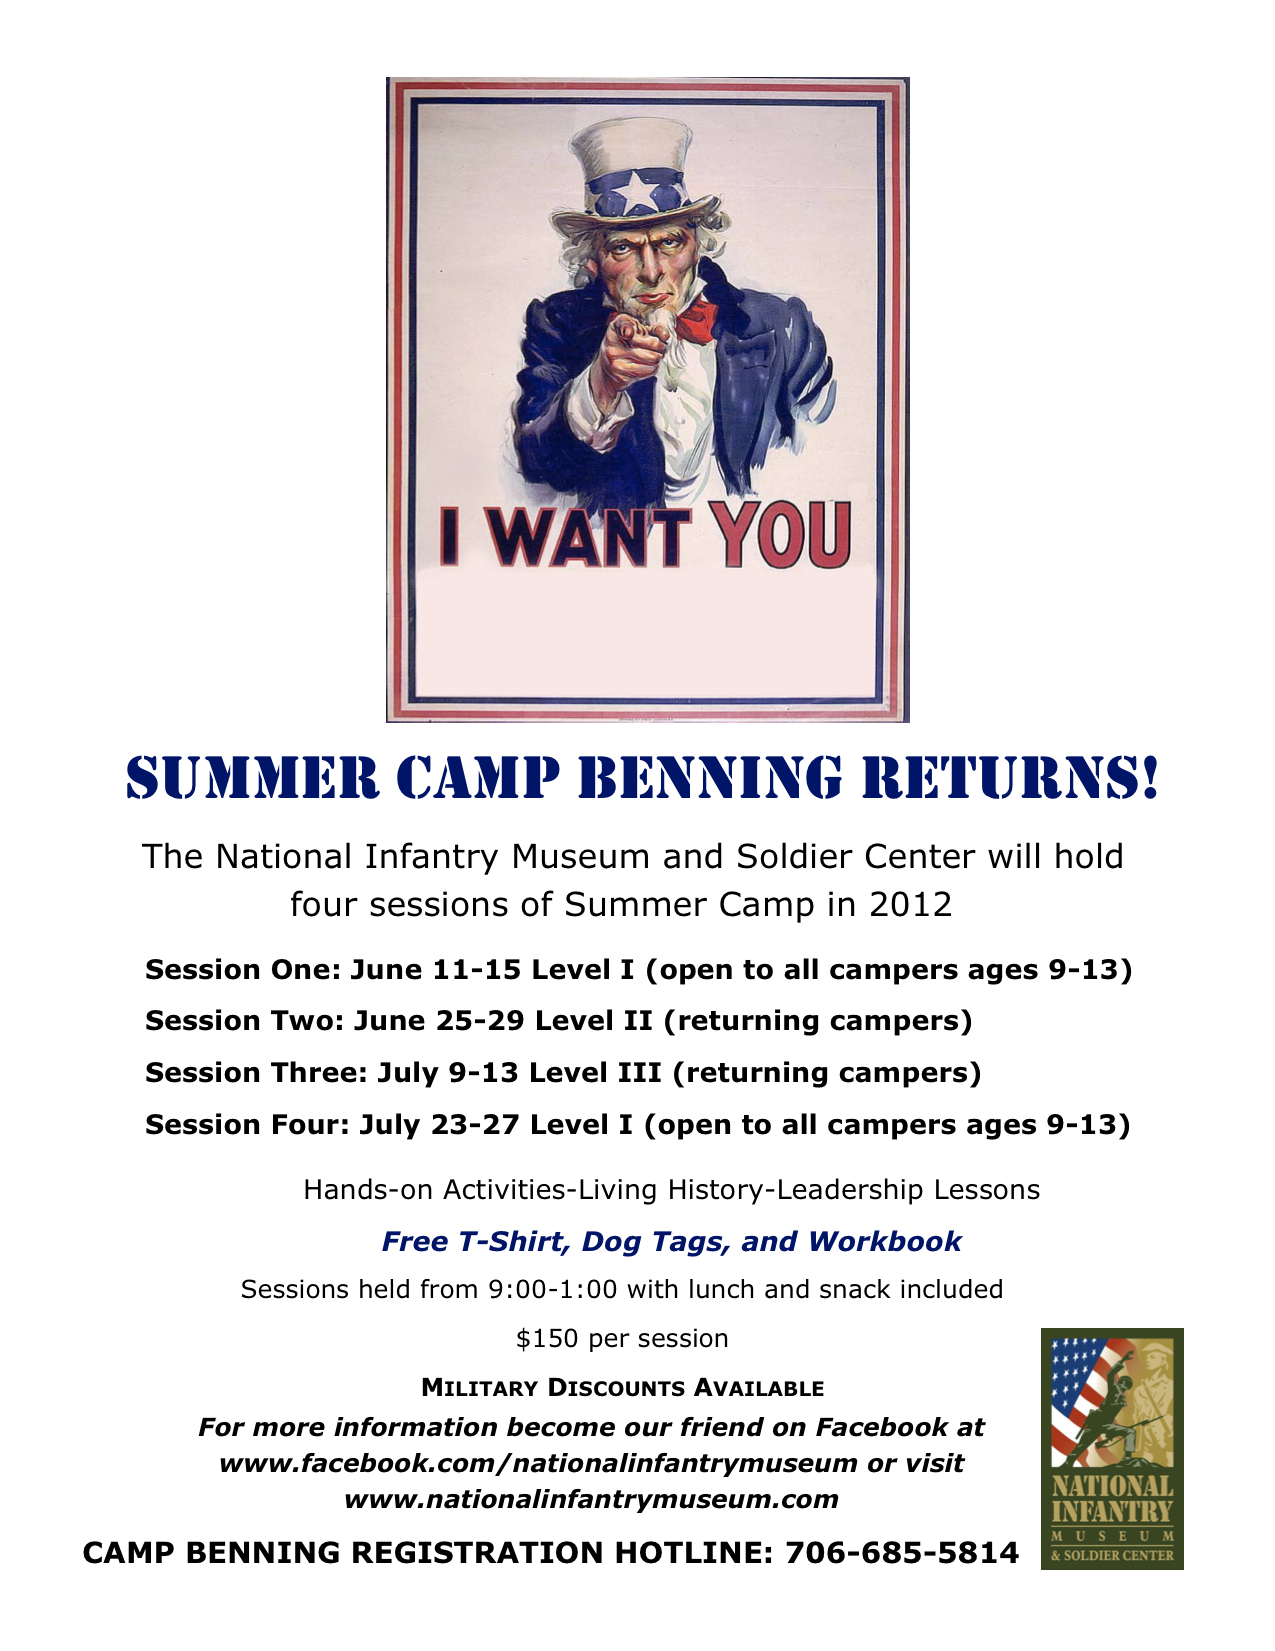 Summer Camp Benning at the NIM